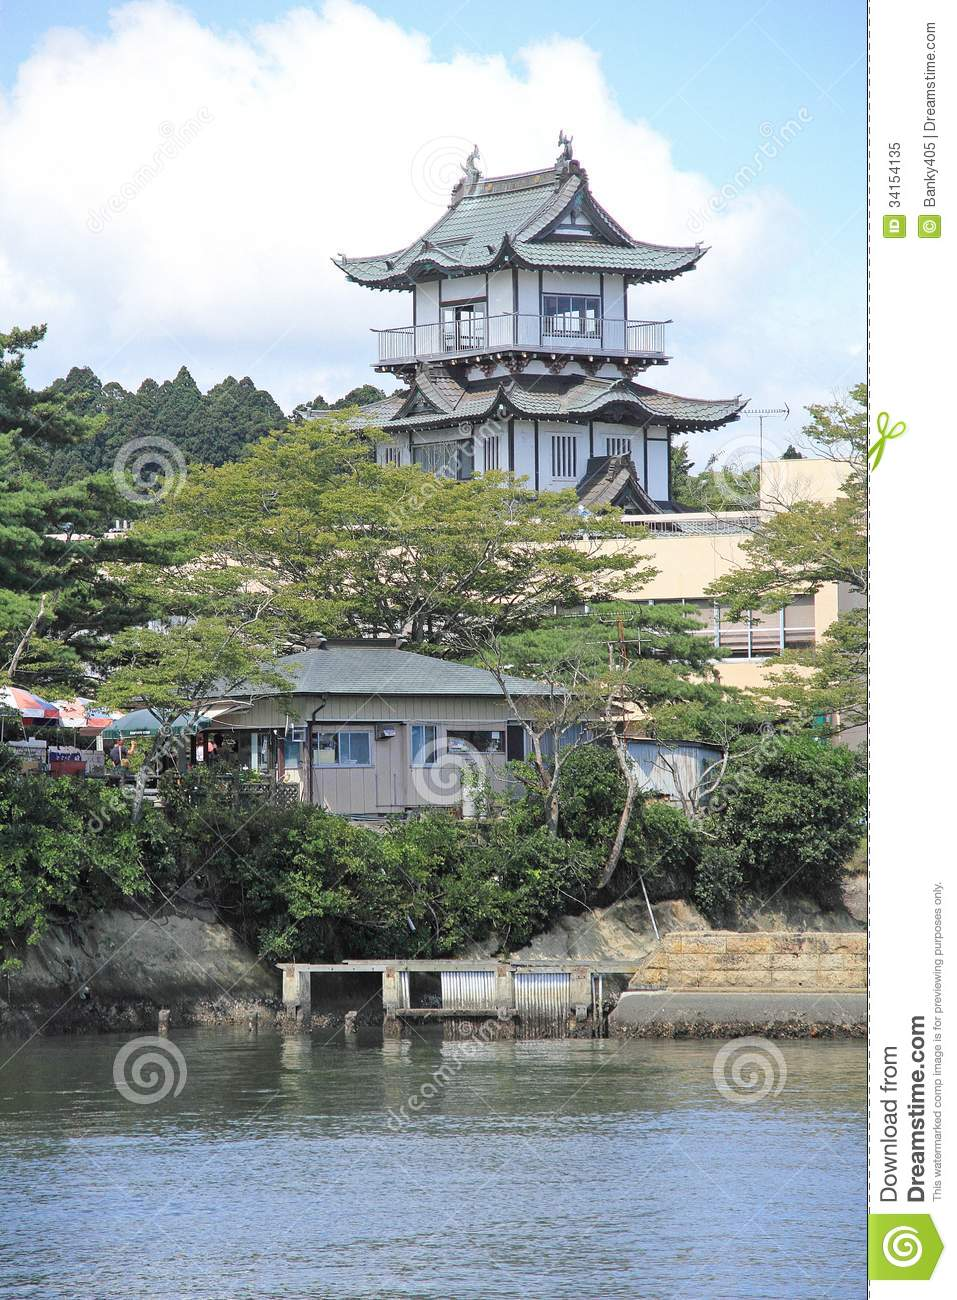 sea pines map with Royalty Free Stock Photo Matsushima Japan Coast Image34154135 on Royalty Free Stock Photo Matsushima Japan Coast Image34154135 likewise Ursus Arctos Beringianus further Q846582 besides Coral Springs further Area Map.